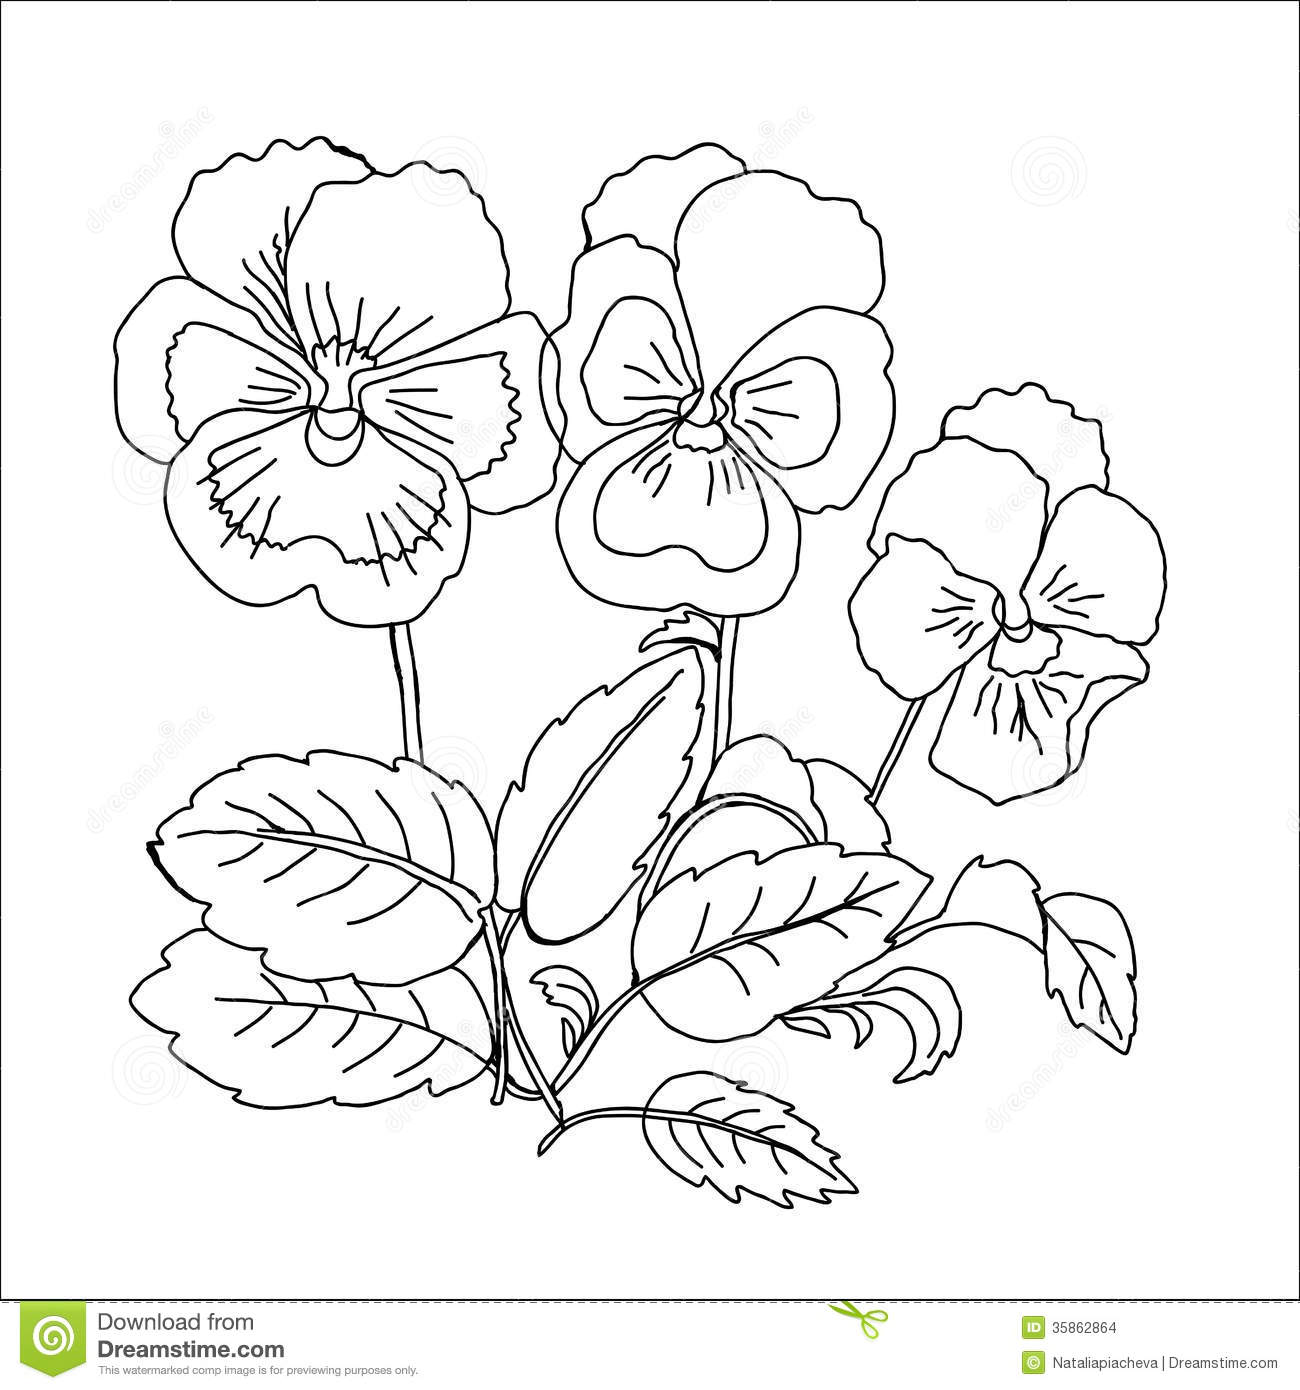 pansy flower drawing - photo #38